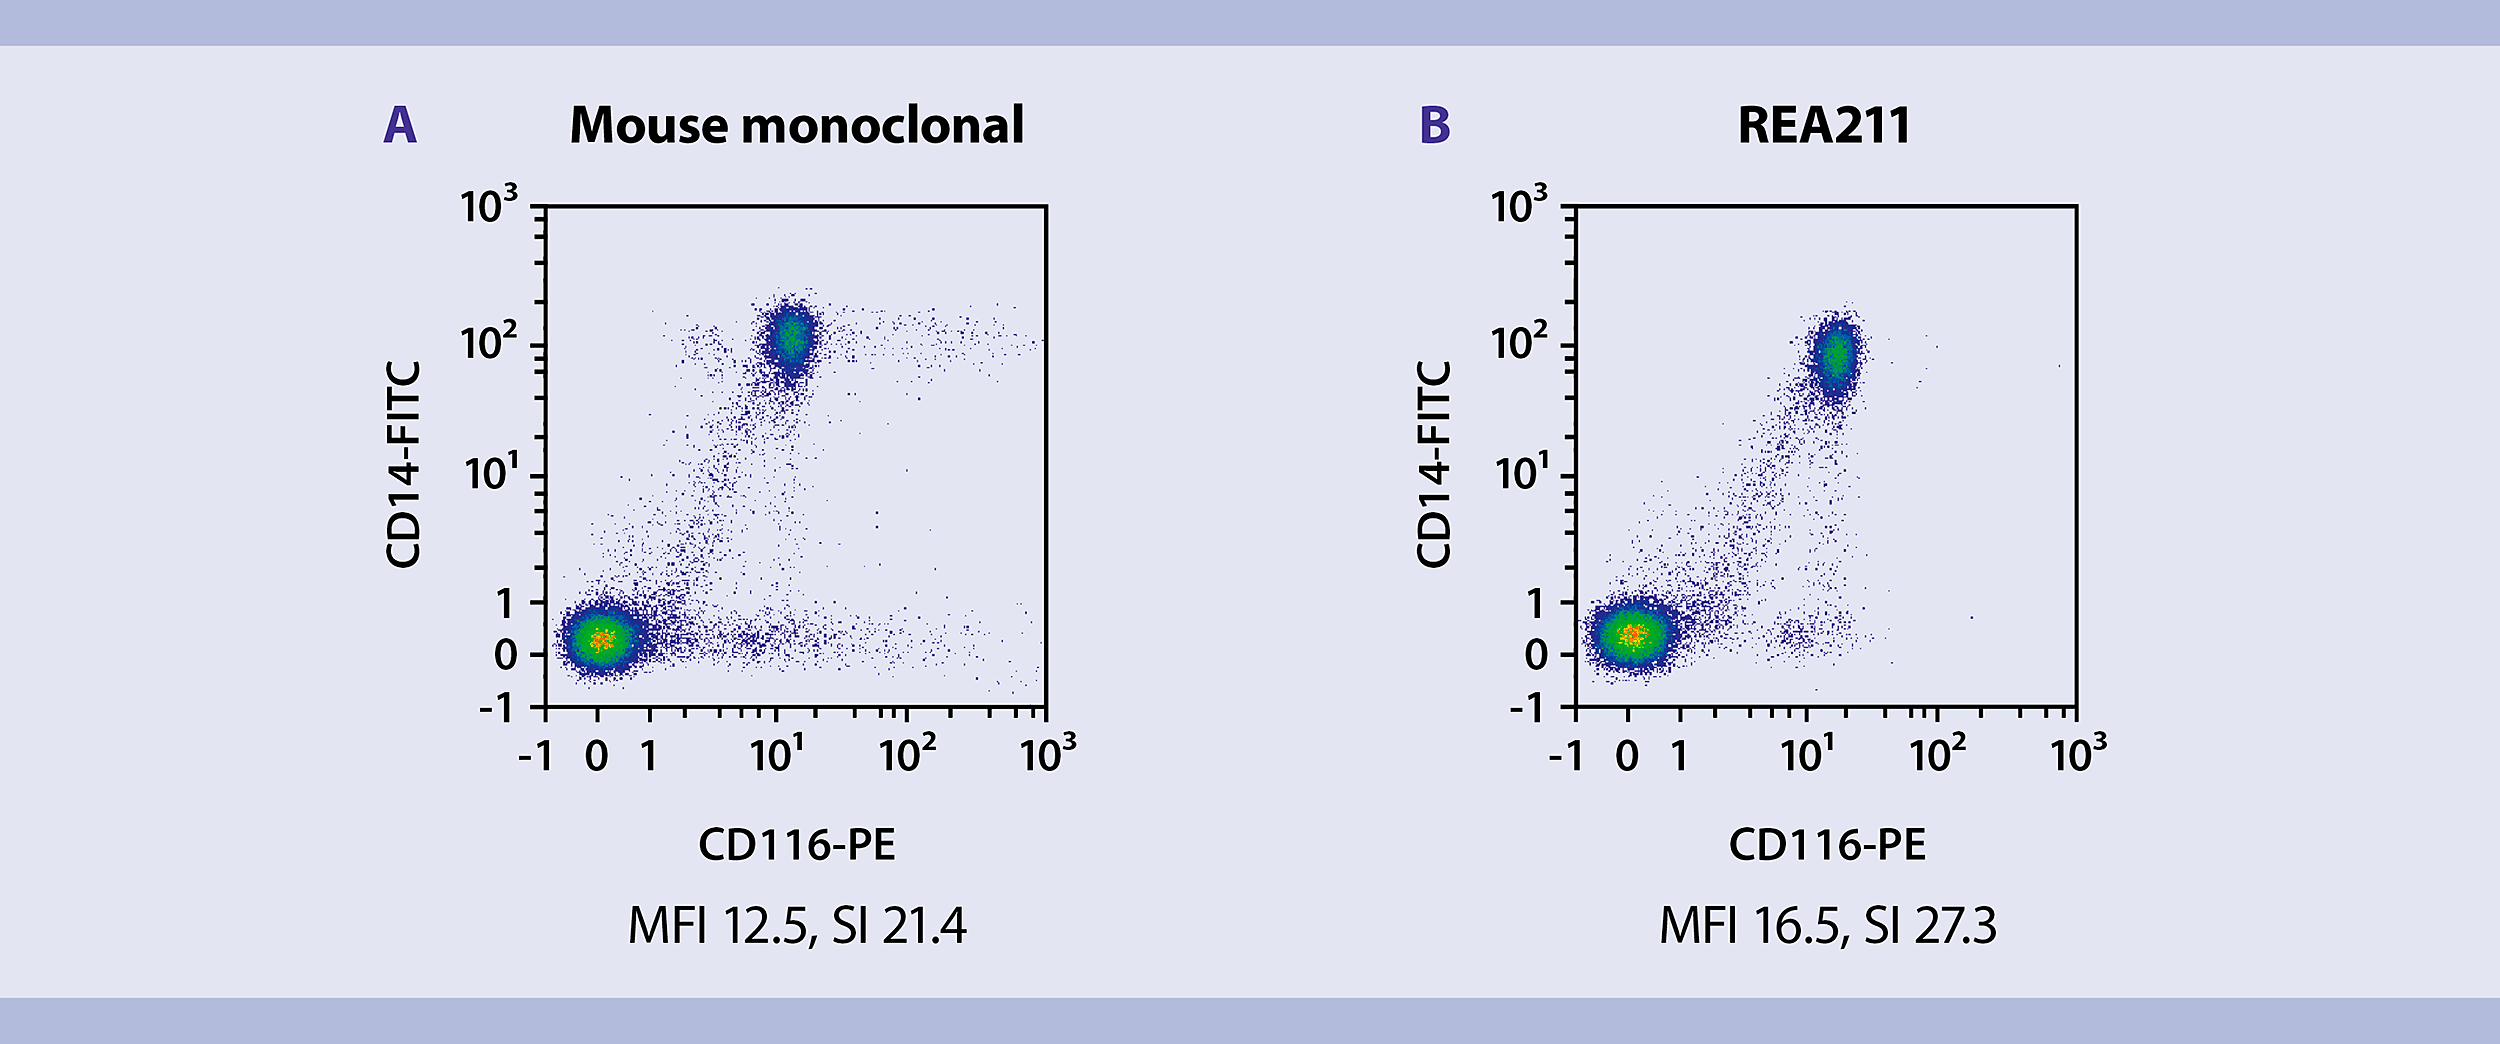 traditional monoclonal antibodies and recombinant antibodies Recombinant antibodies have many attractive attributes compared to the traditional polyclonal antisera and monoclonal immunoglobulin antibodies first, they can be overexpressed and easily purified in a range of common eukaryotic and prokaryotic hosts.